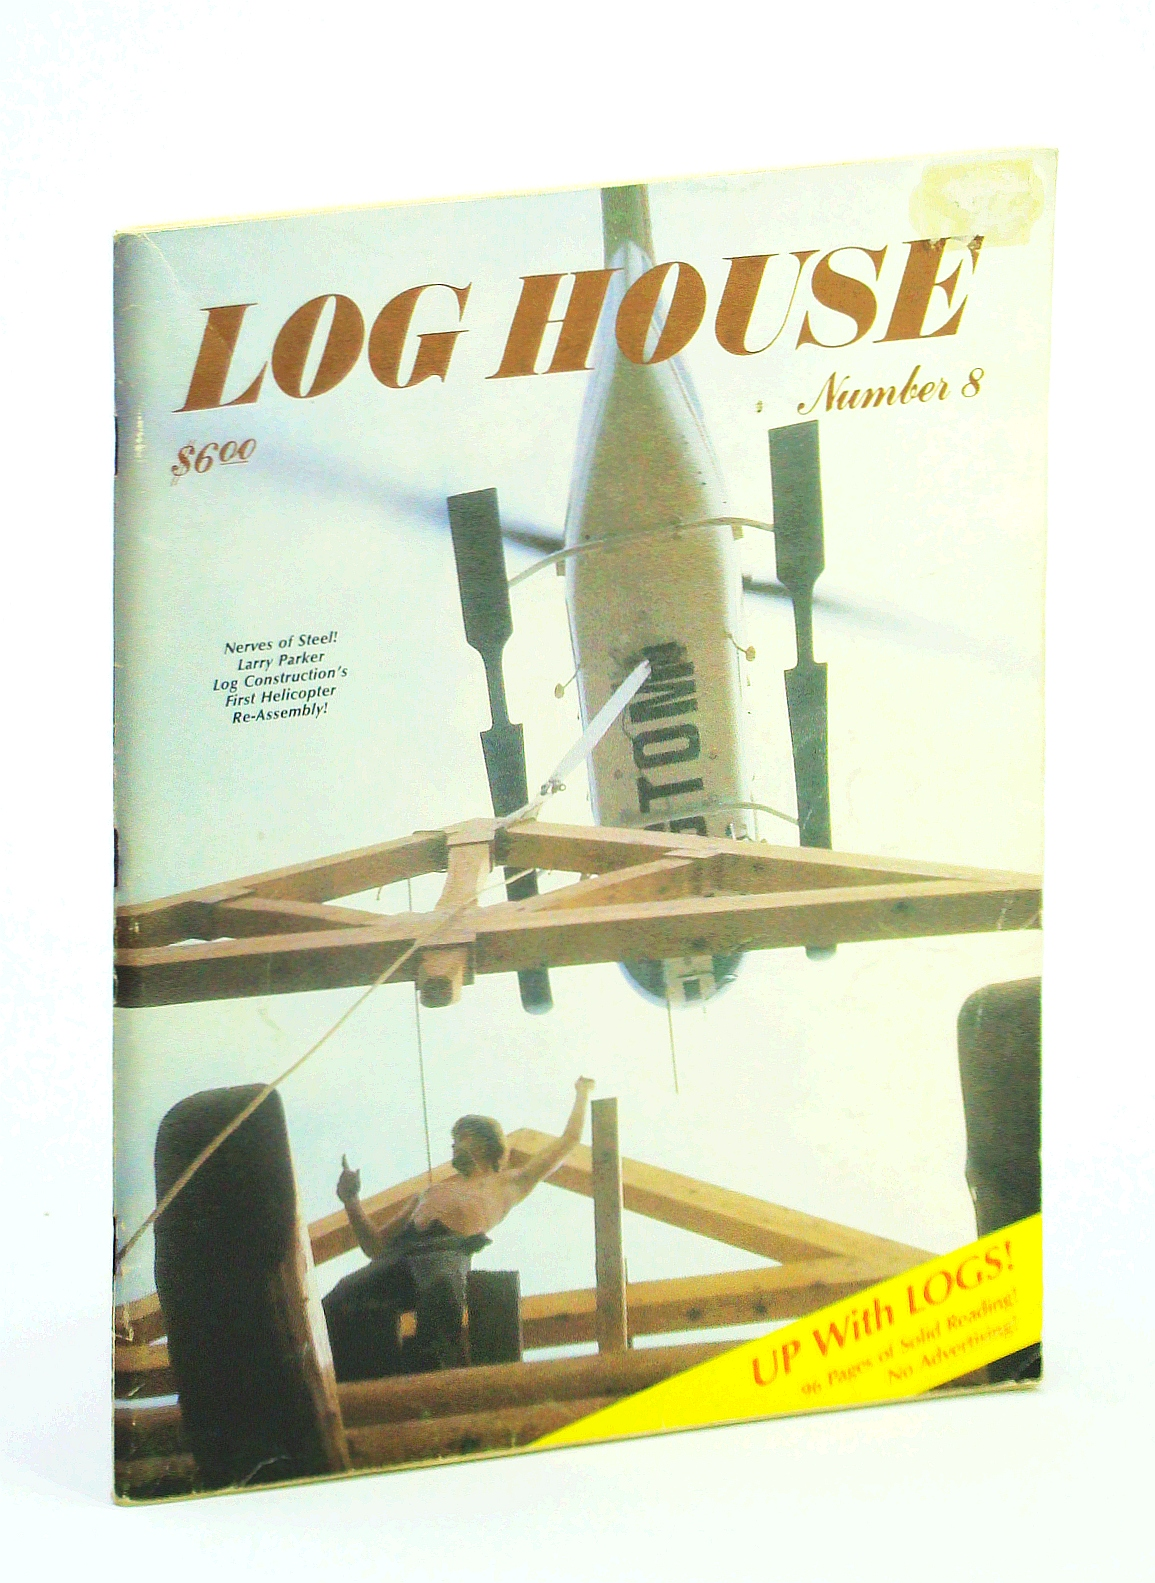 Image for Log House [Magazine] Number 8, Spring 1983